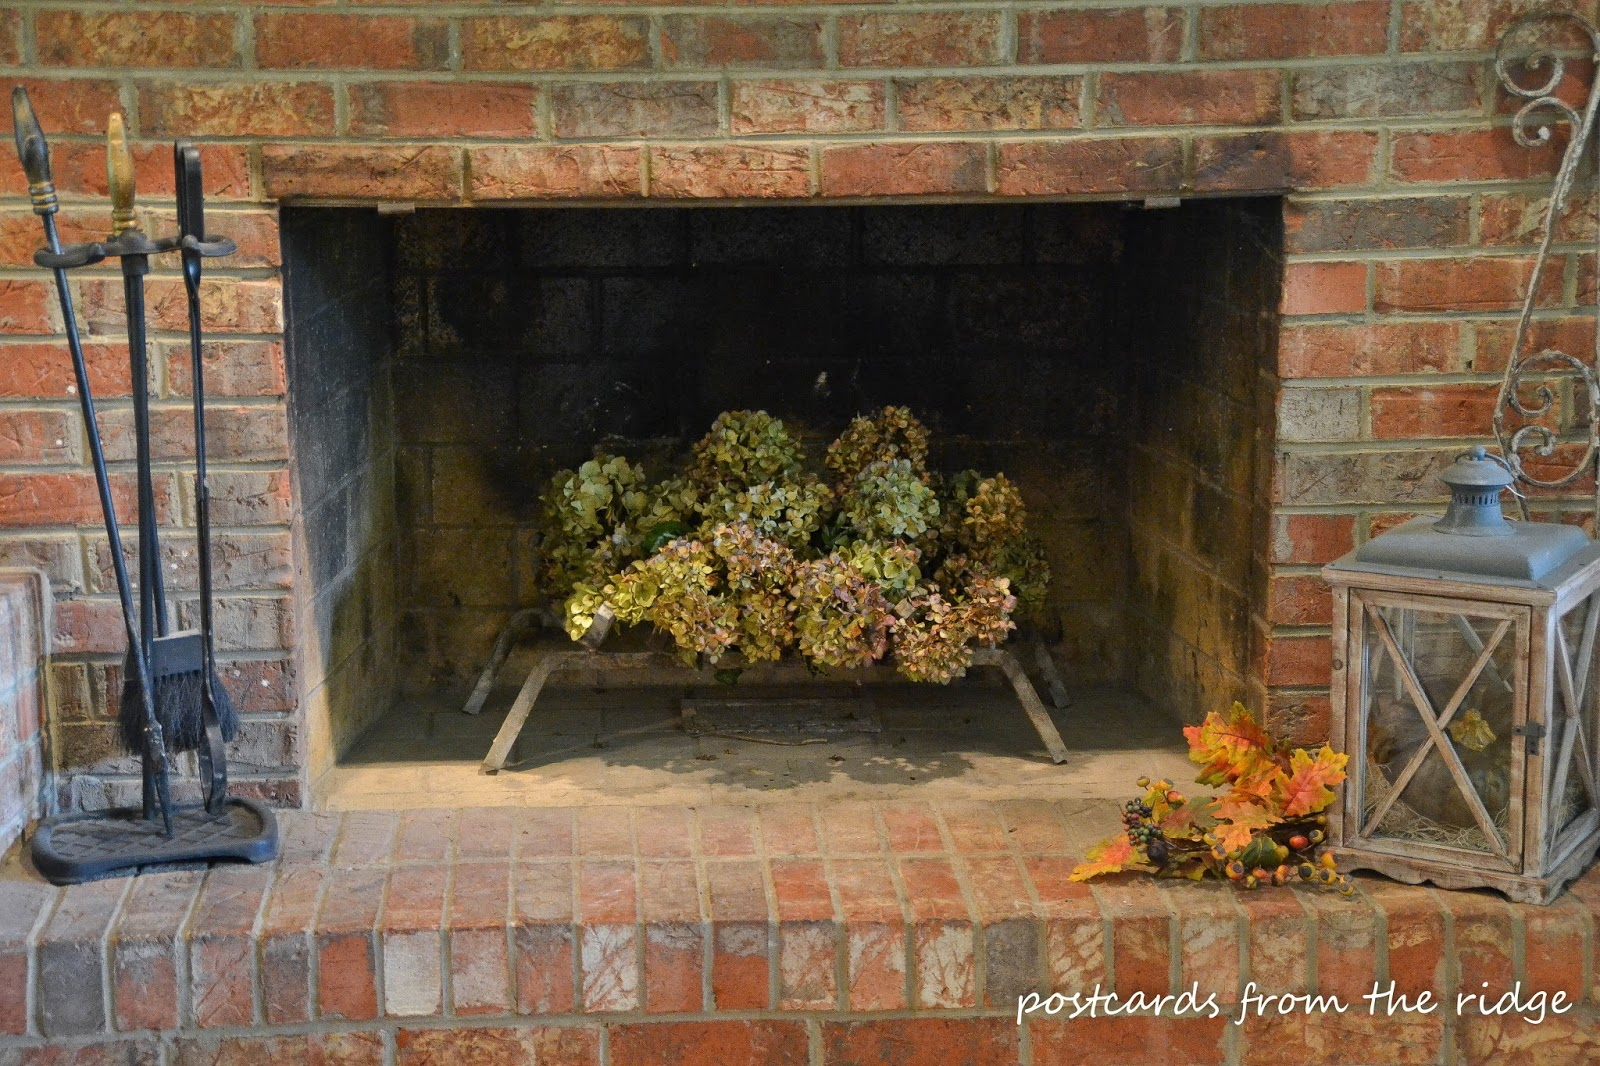 Love dried hydrangeas. There are lots of great ideas on this site for pretty fall decor using natural, vintage, and farmhouse style items.